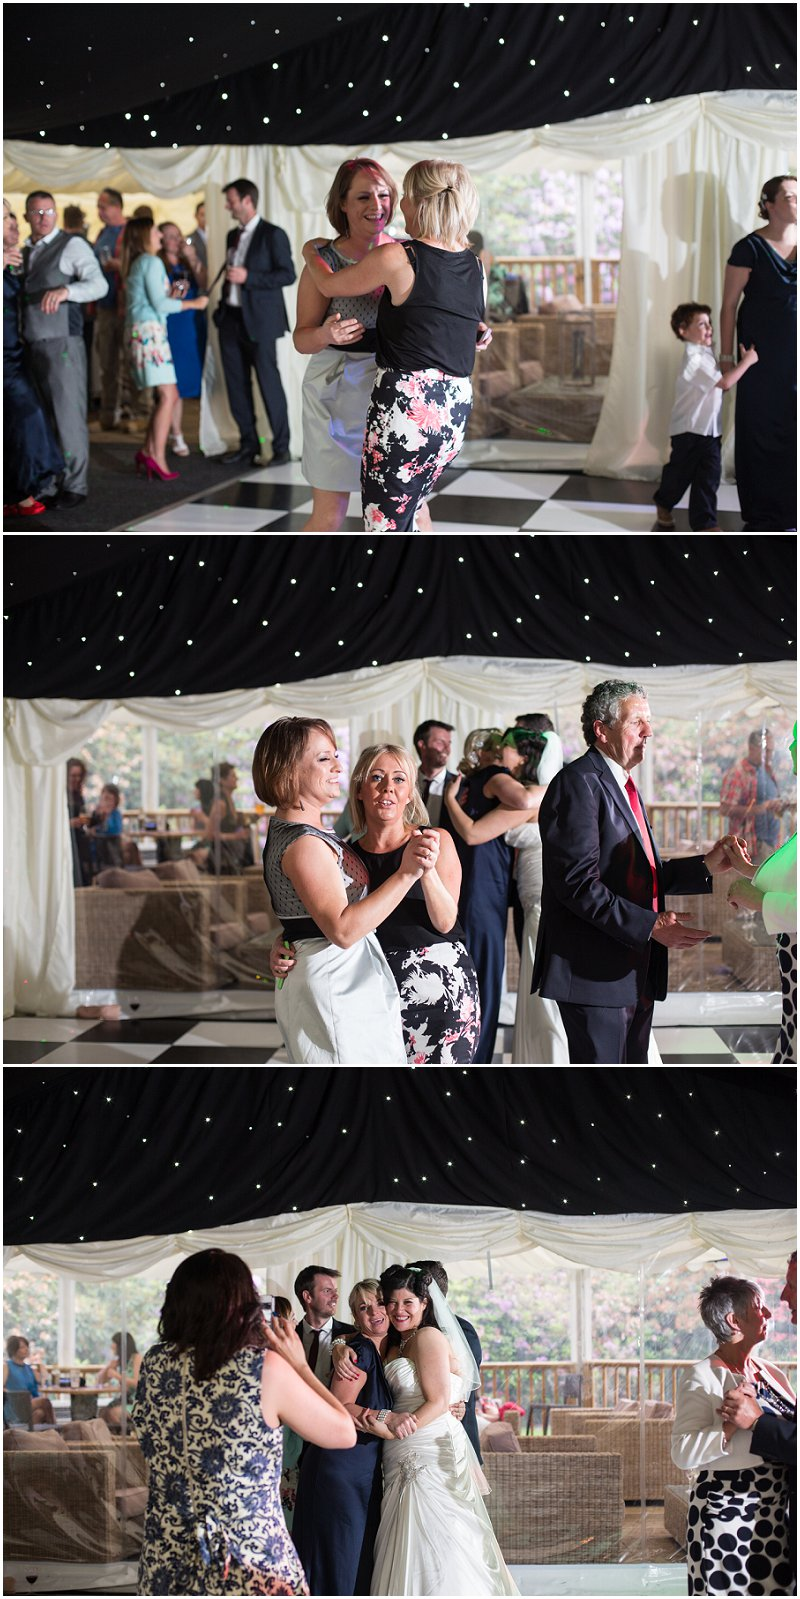 Guests dancing at Soughton Hall wedding evening reception